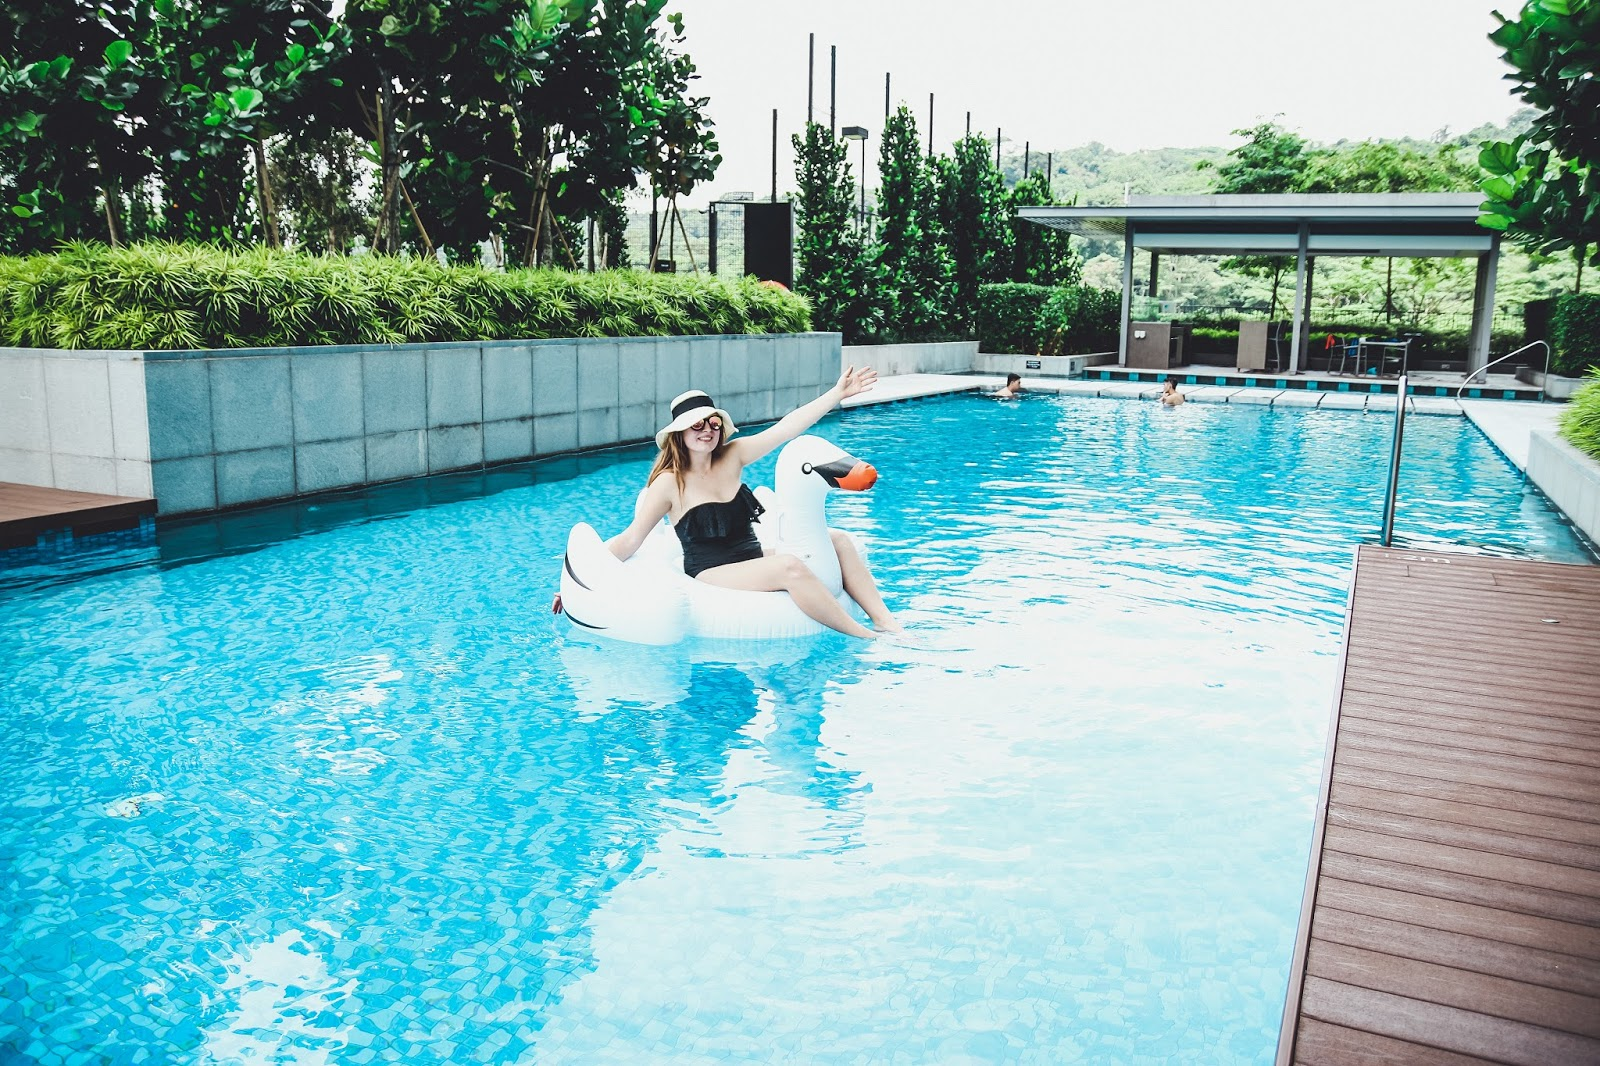 7 Reasons Why You Should Buy A Swan Pool Floatie